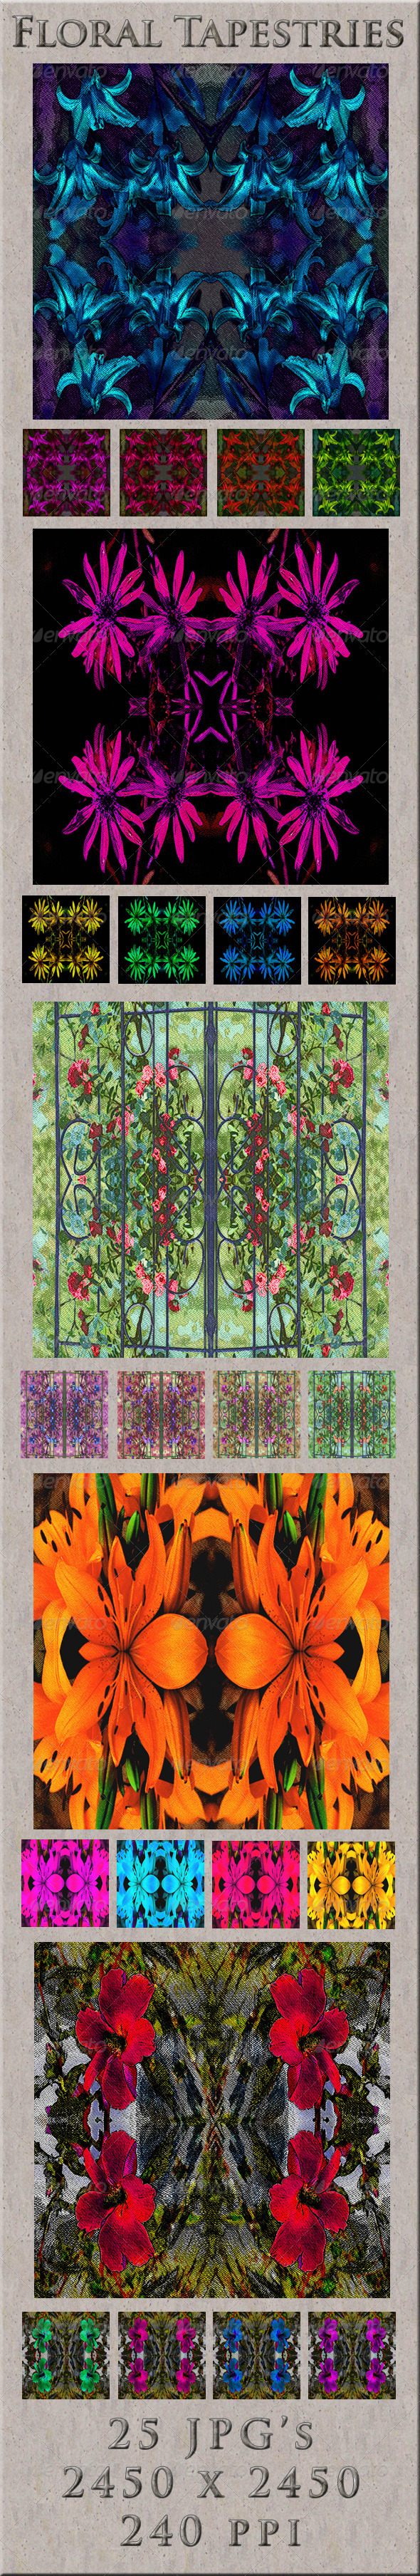 GraphicRiver Floral Tapestries 4633050